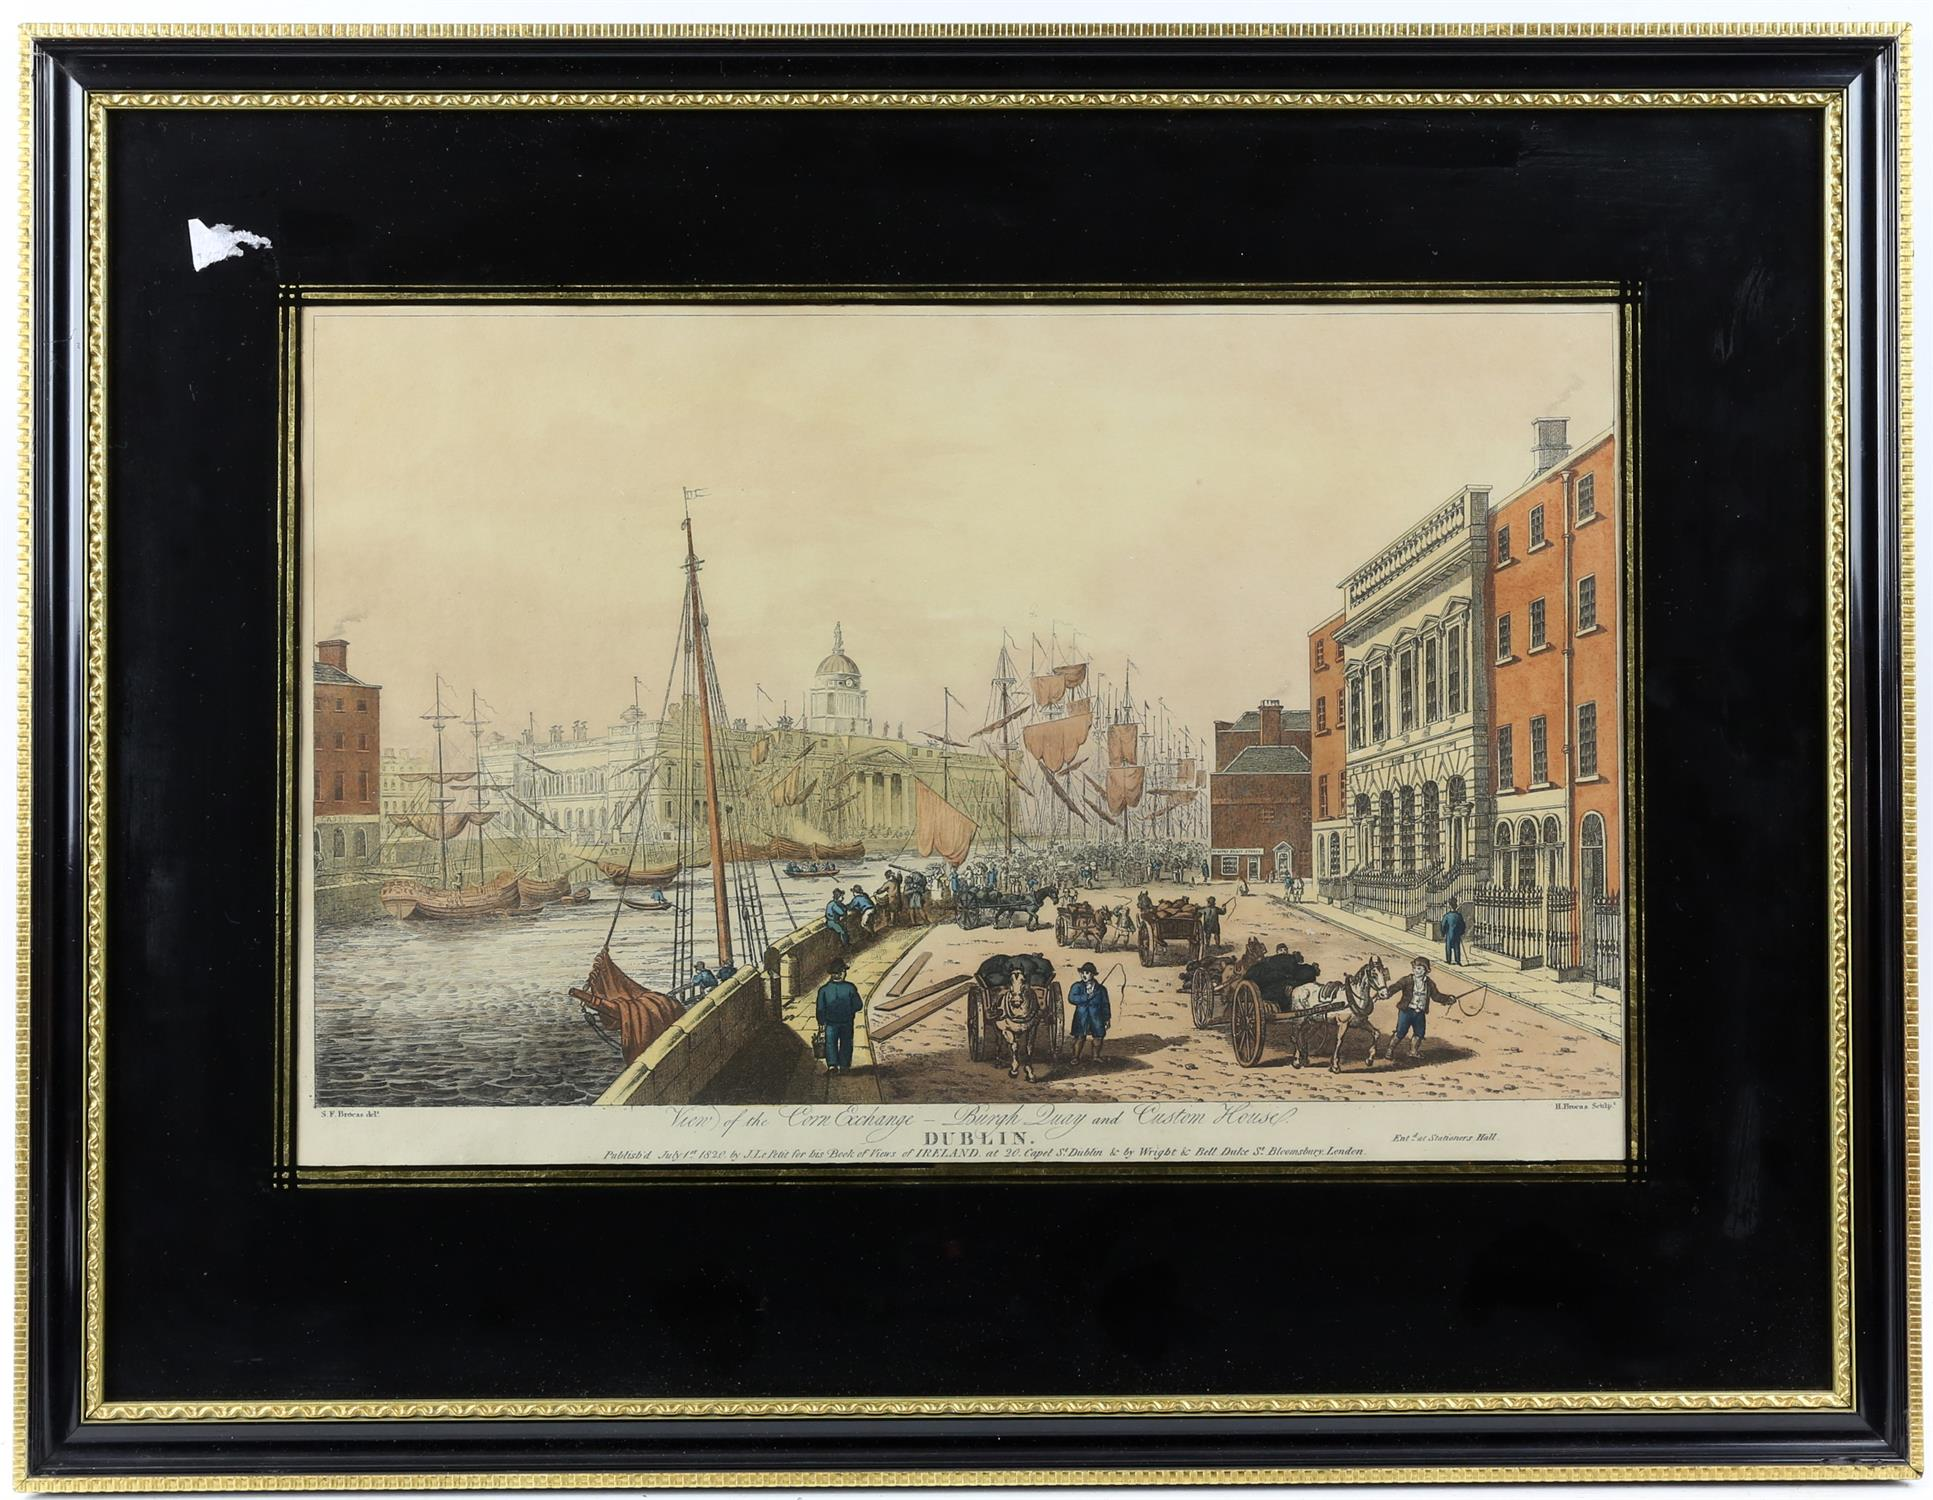 Henry Brocas. View of the Corn Exchange, Burgh Quay and Custom House, Dublin. H/col engraving after - Image 2 of 3